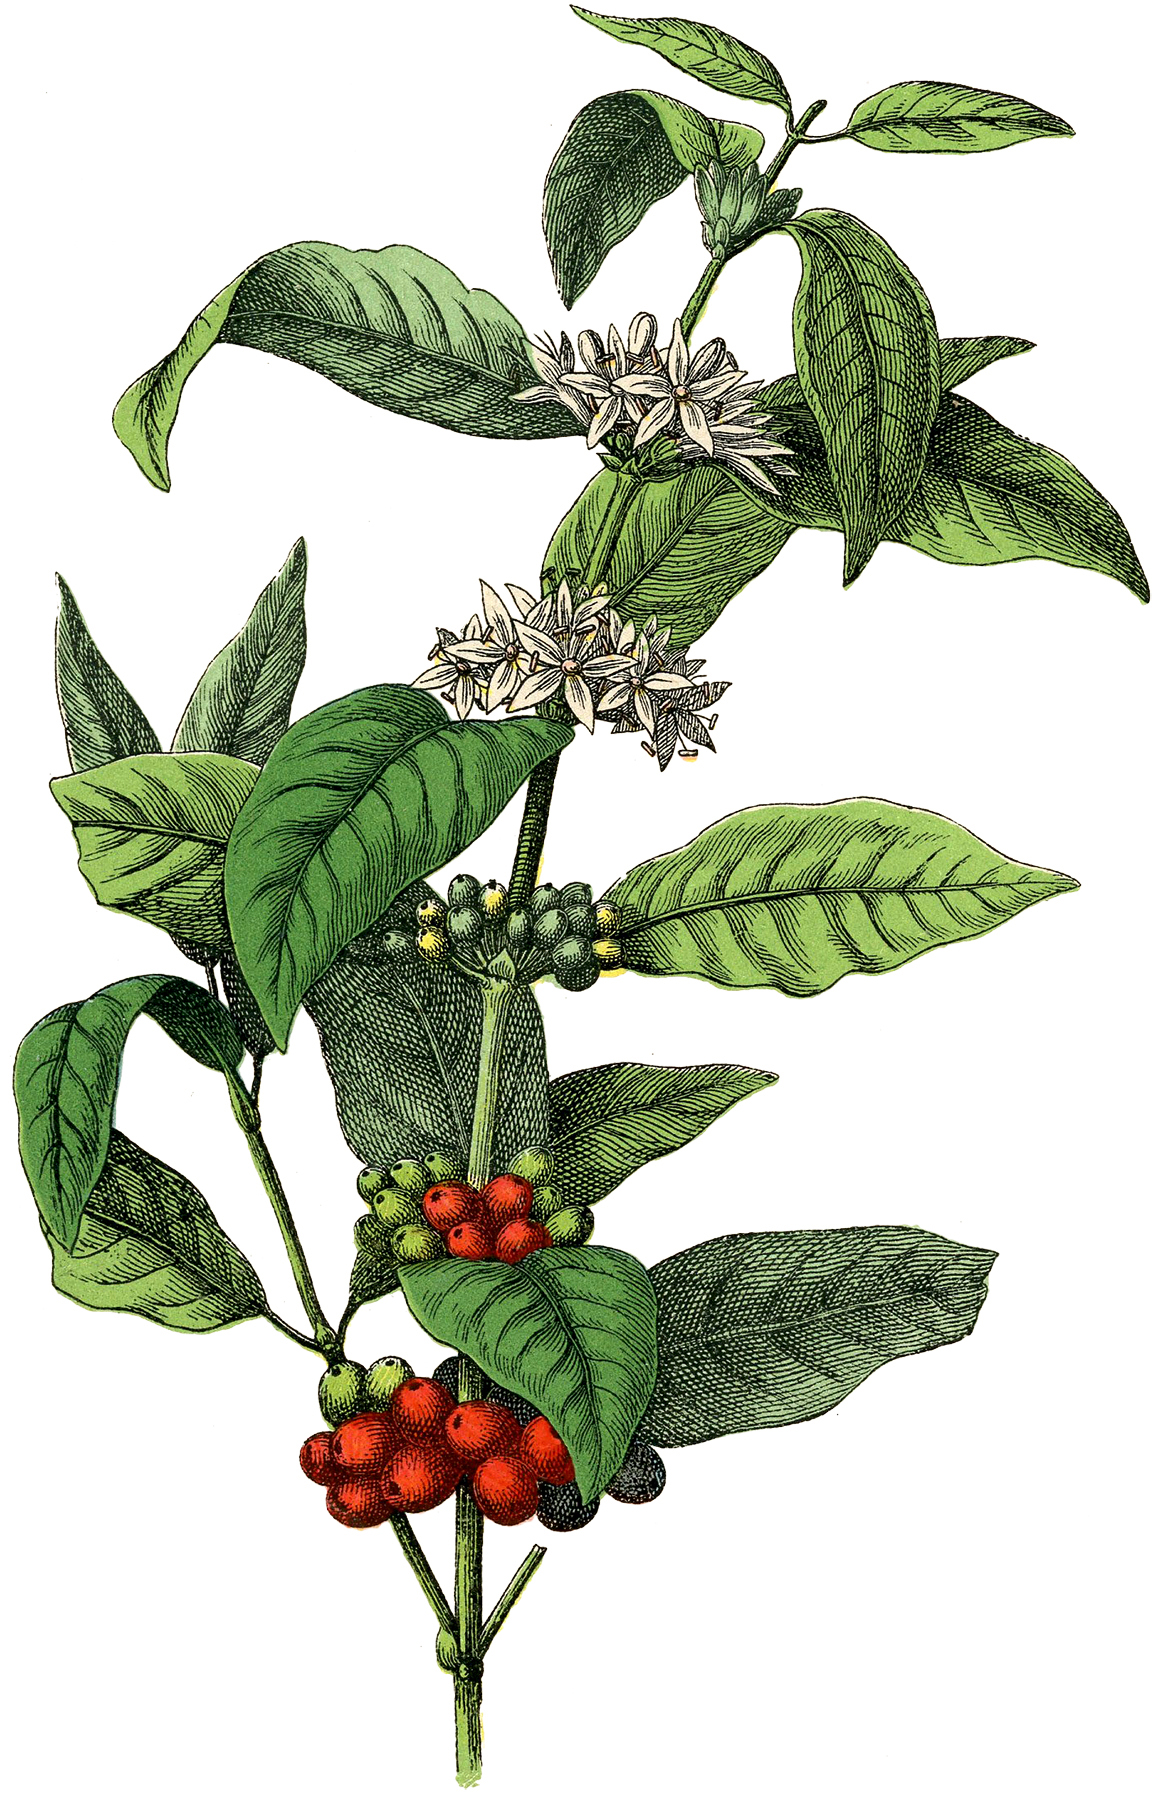 Free stock image coffee plant the graphics fairy for Graphics fairy